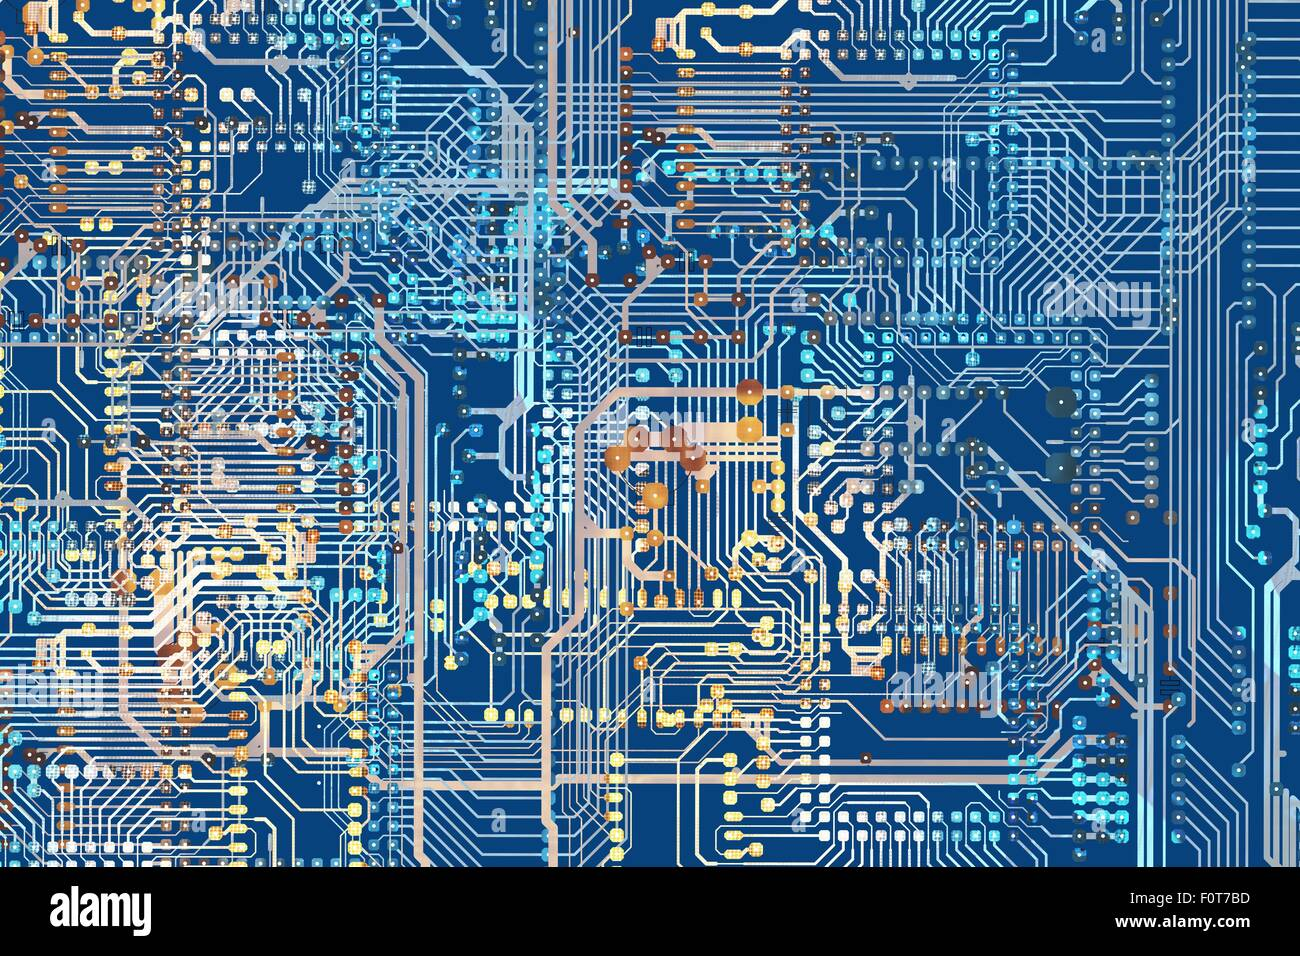 Colorful Circuit Board Background Illustration. Circuit Connections ...